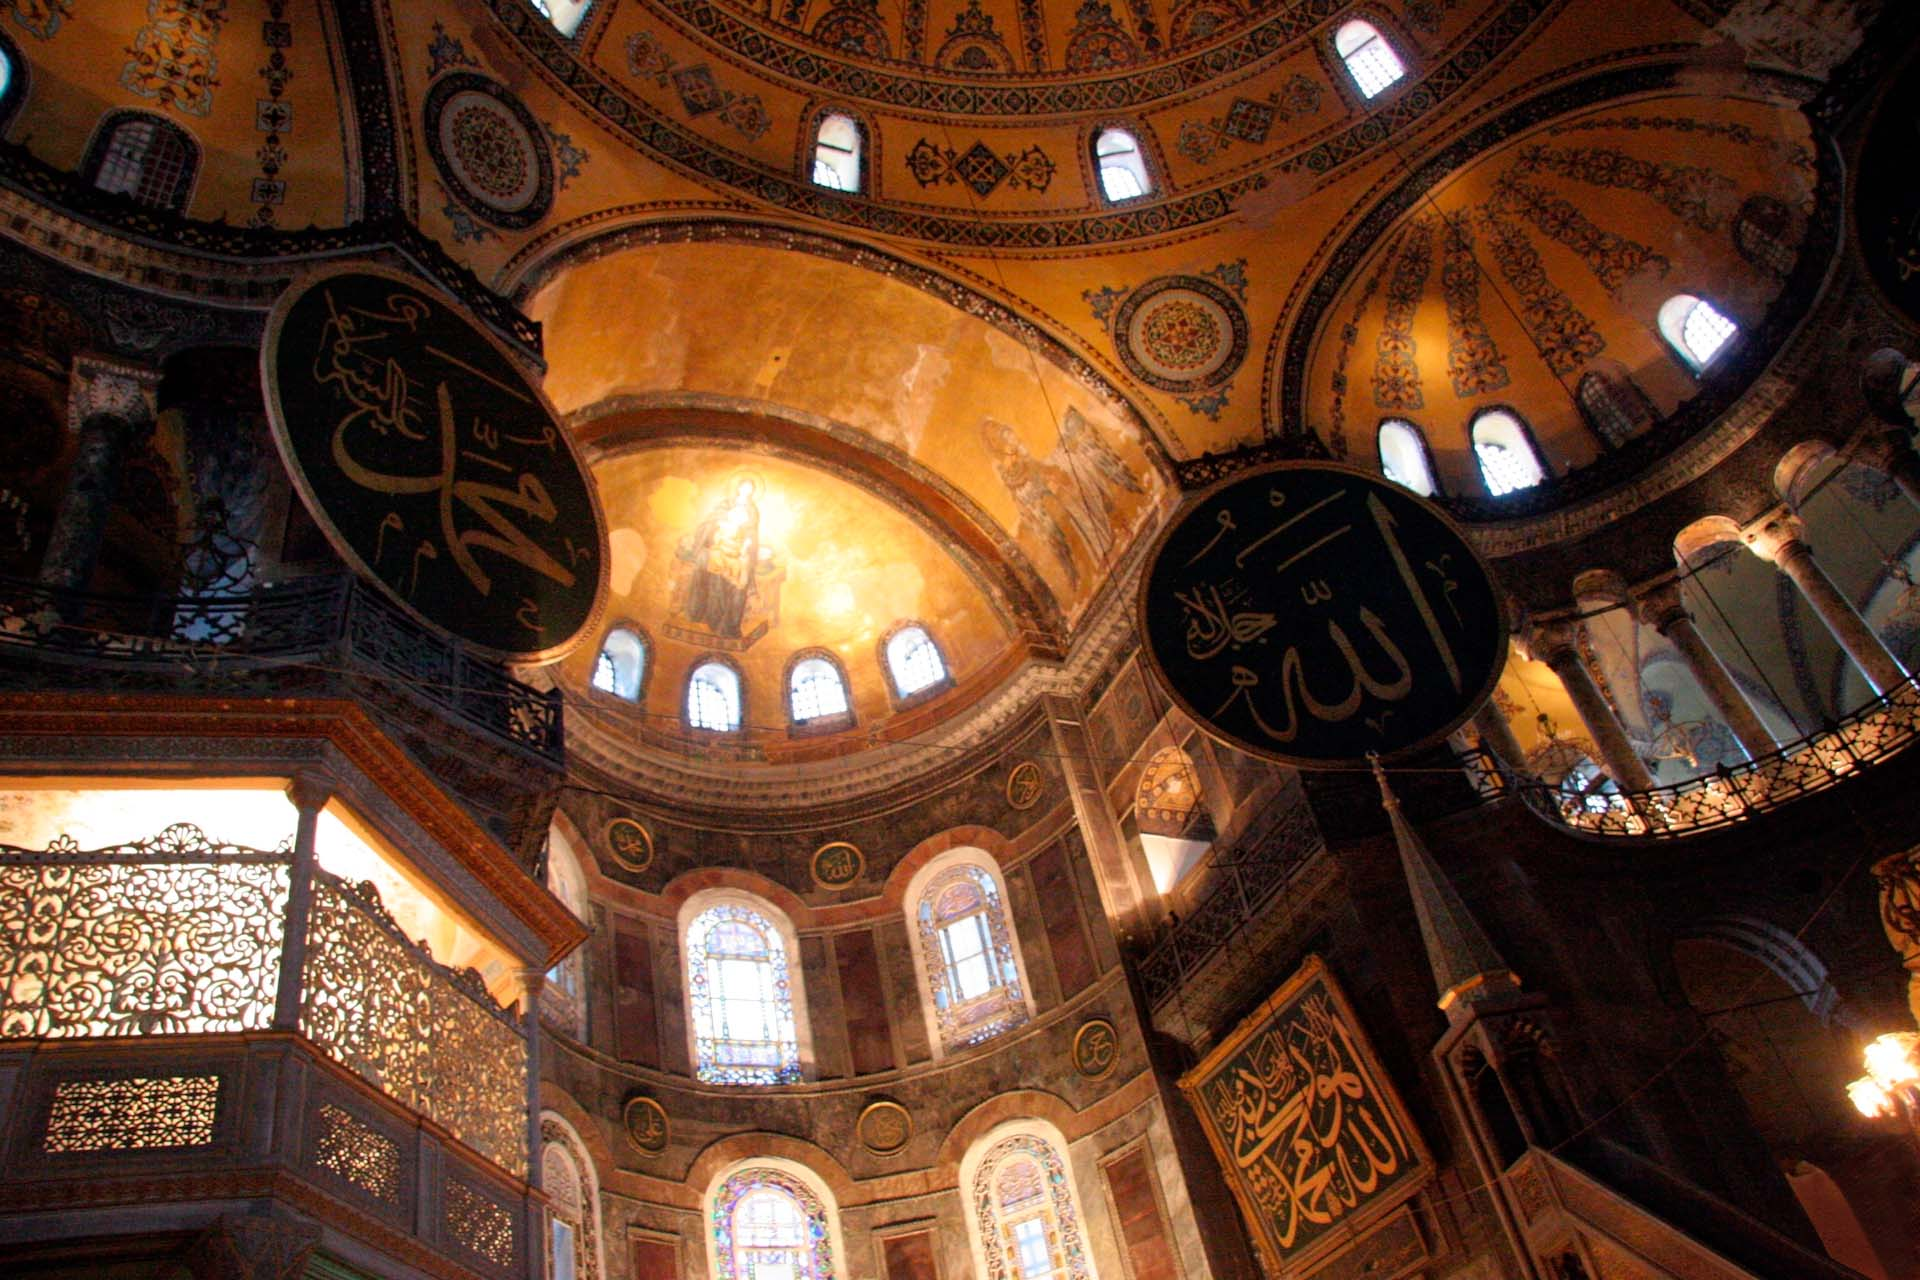 Hagia Sophia, constructed in 537 AD, later converted into an Ottoman mosque, from 1453 until 1931, today is a museum. RTE want to turn it into a mosque again...